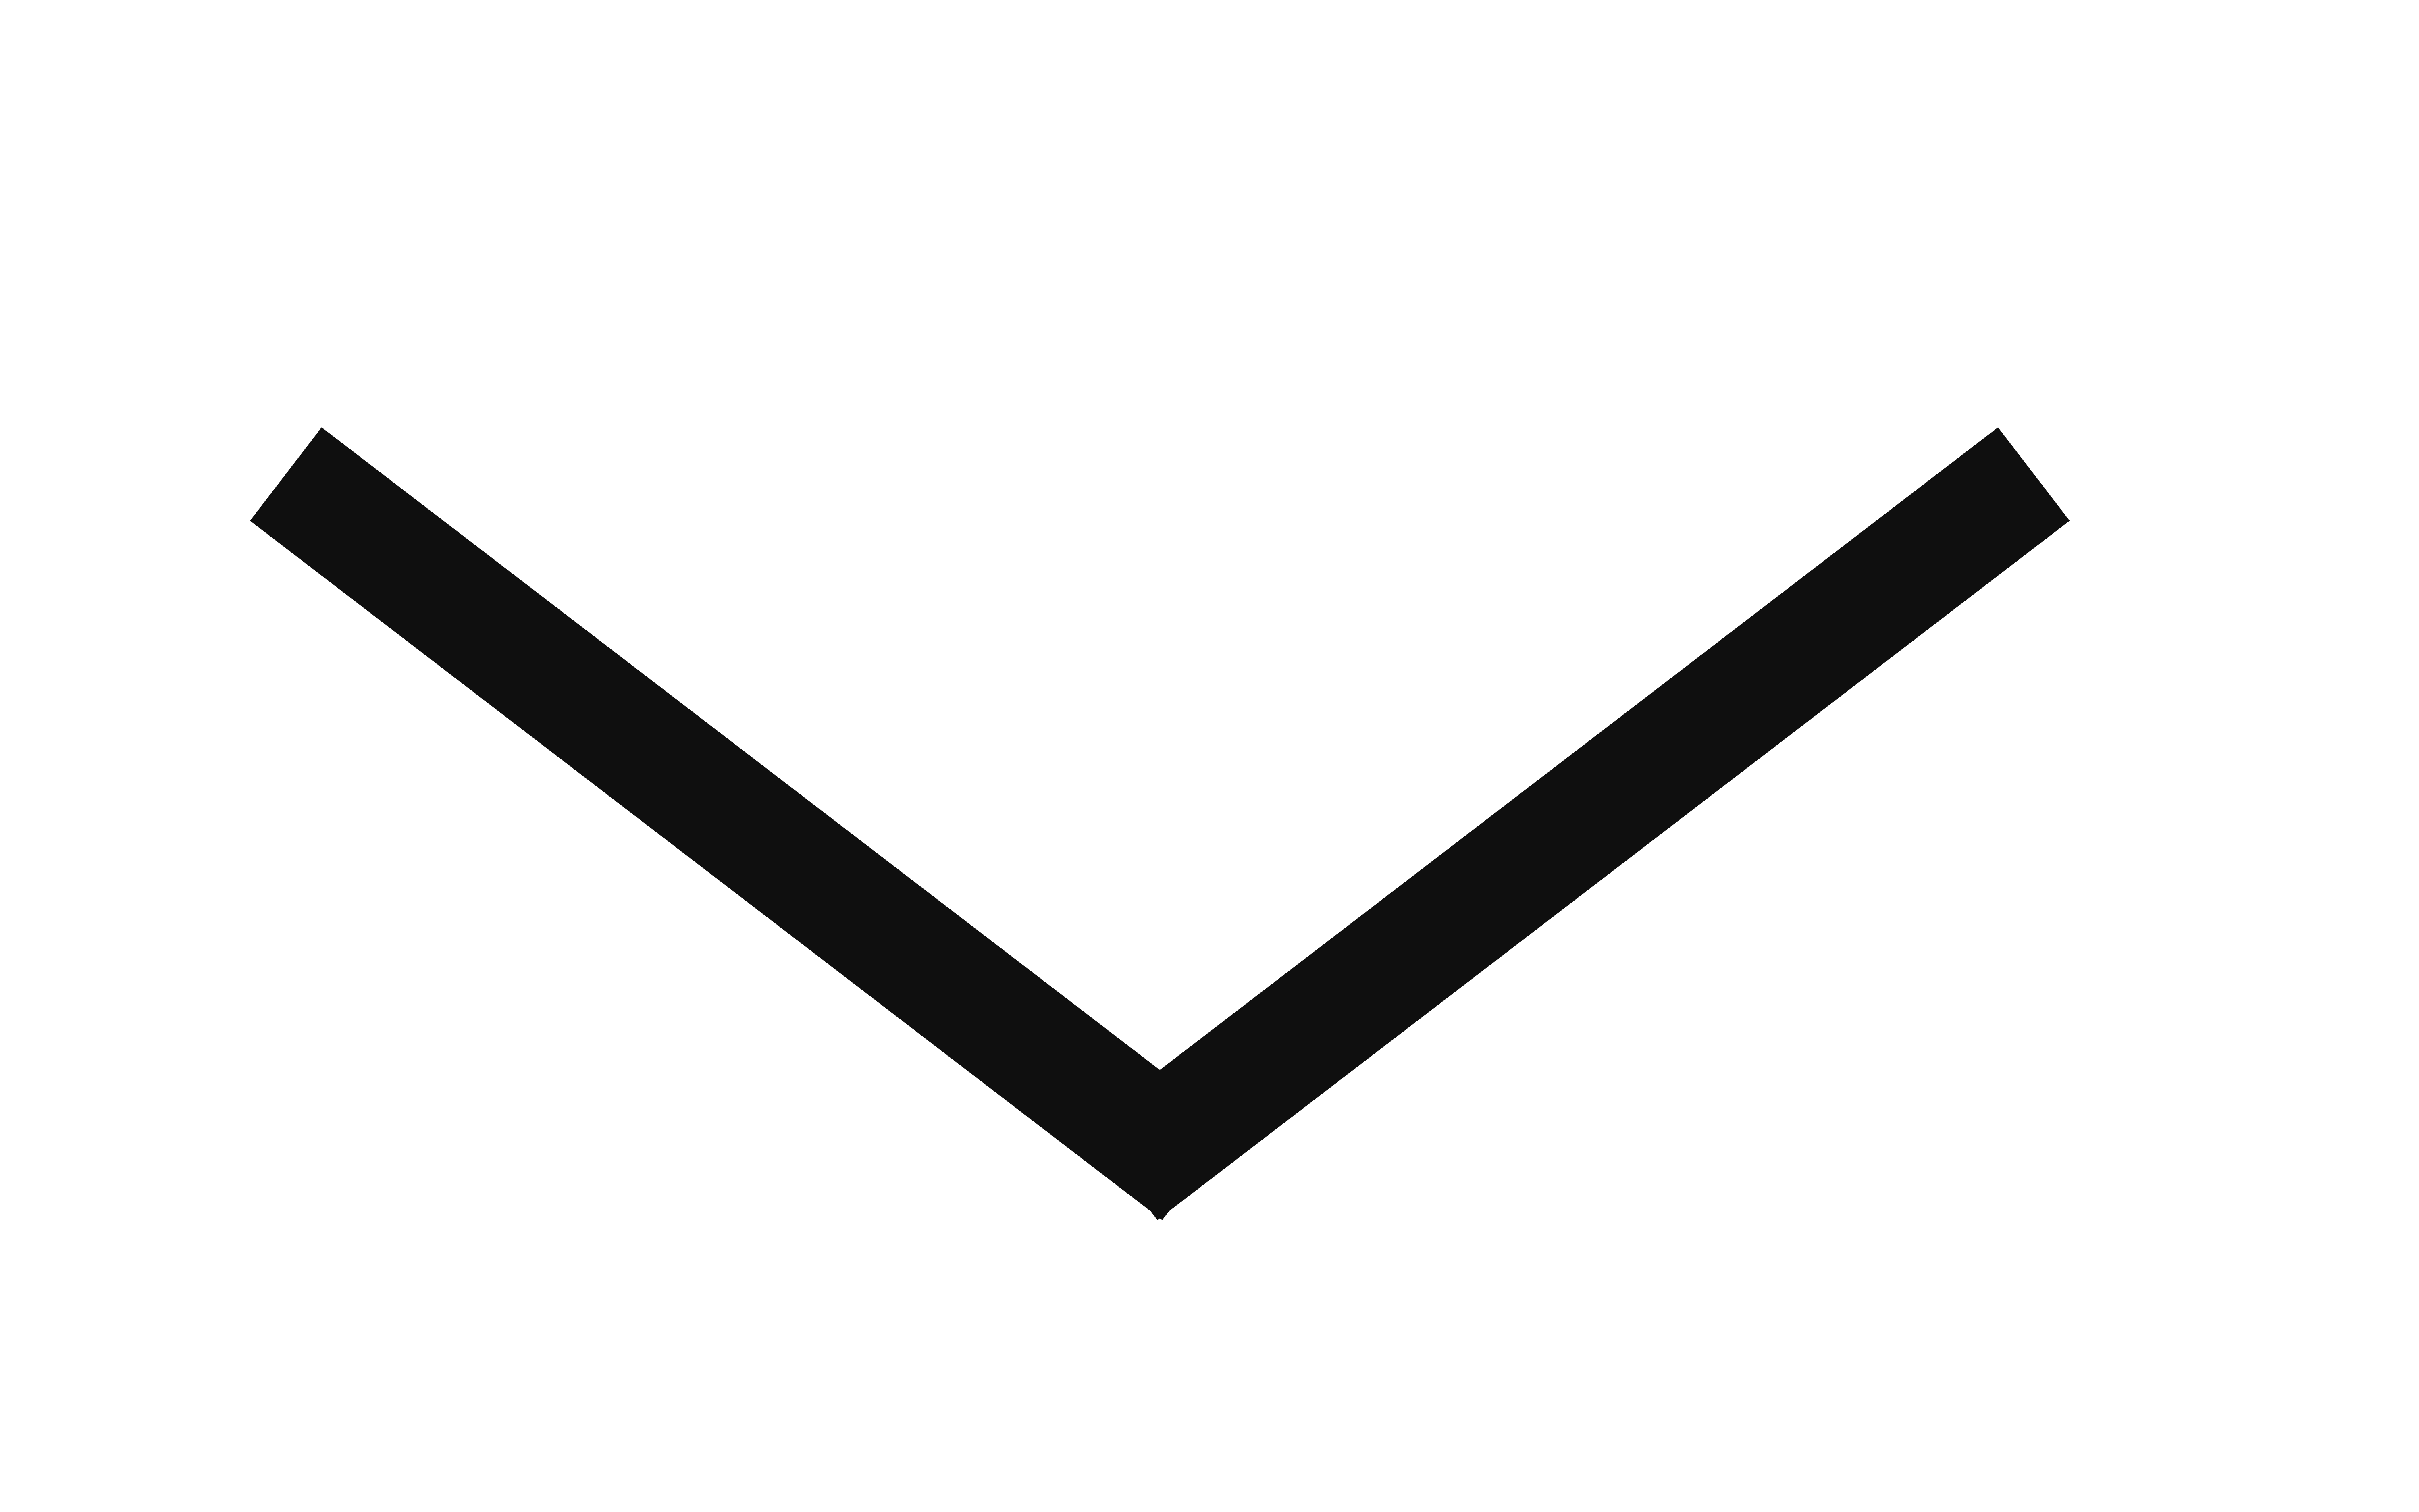 black scroll arrow